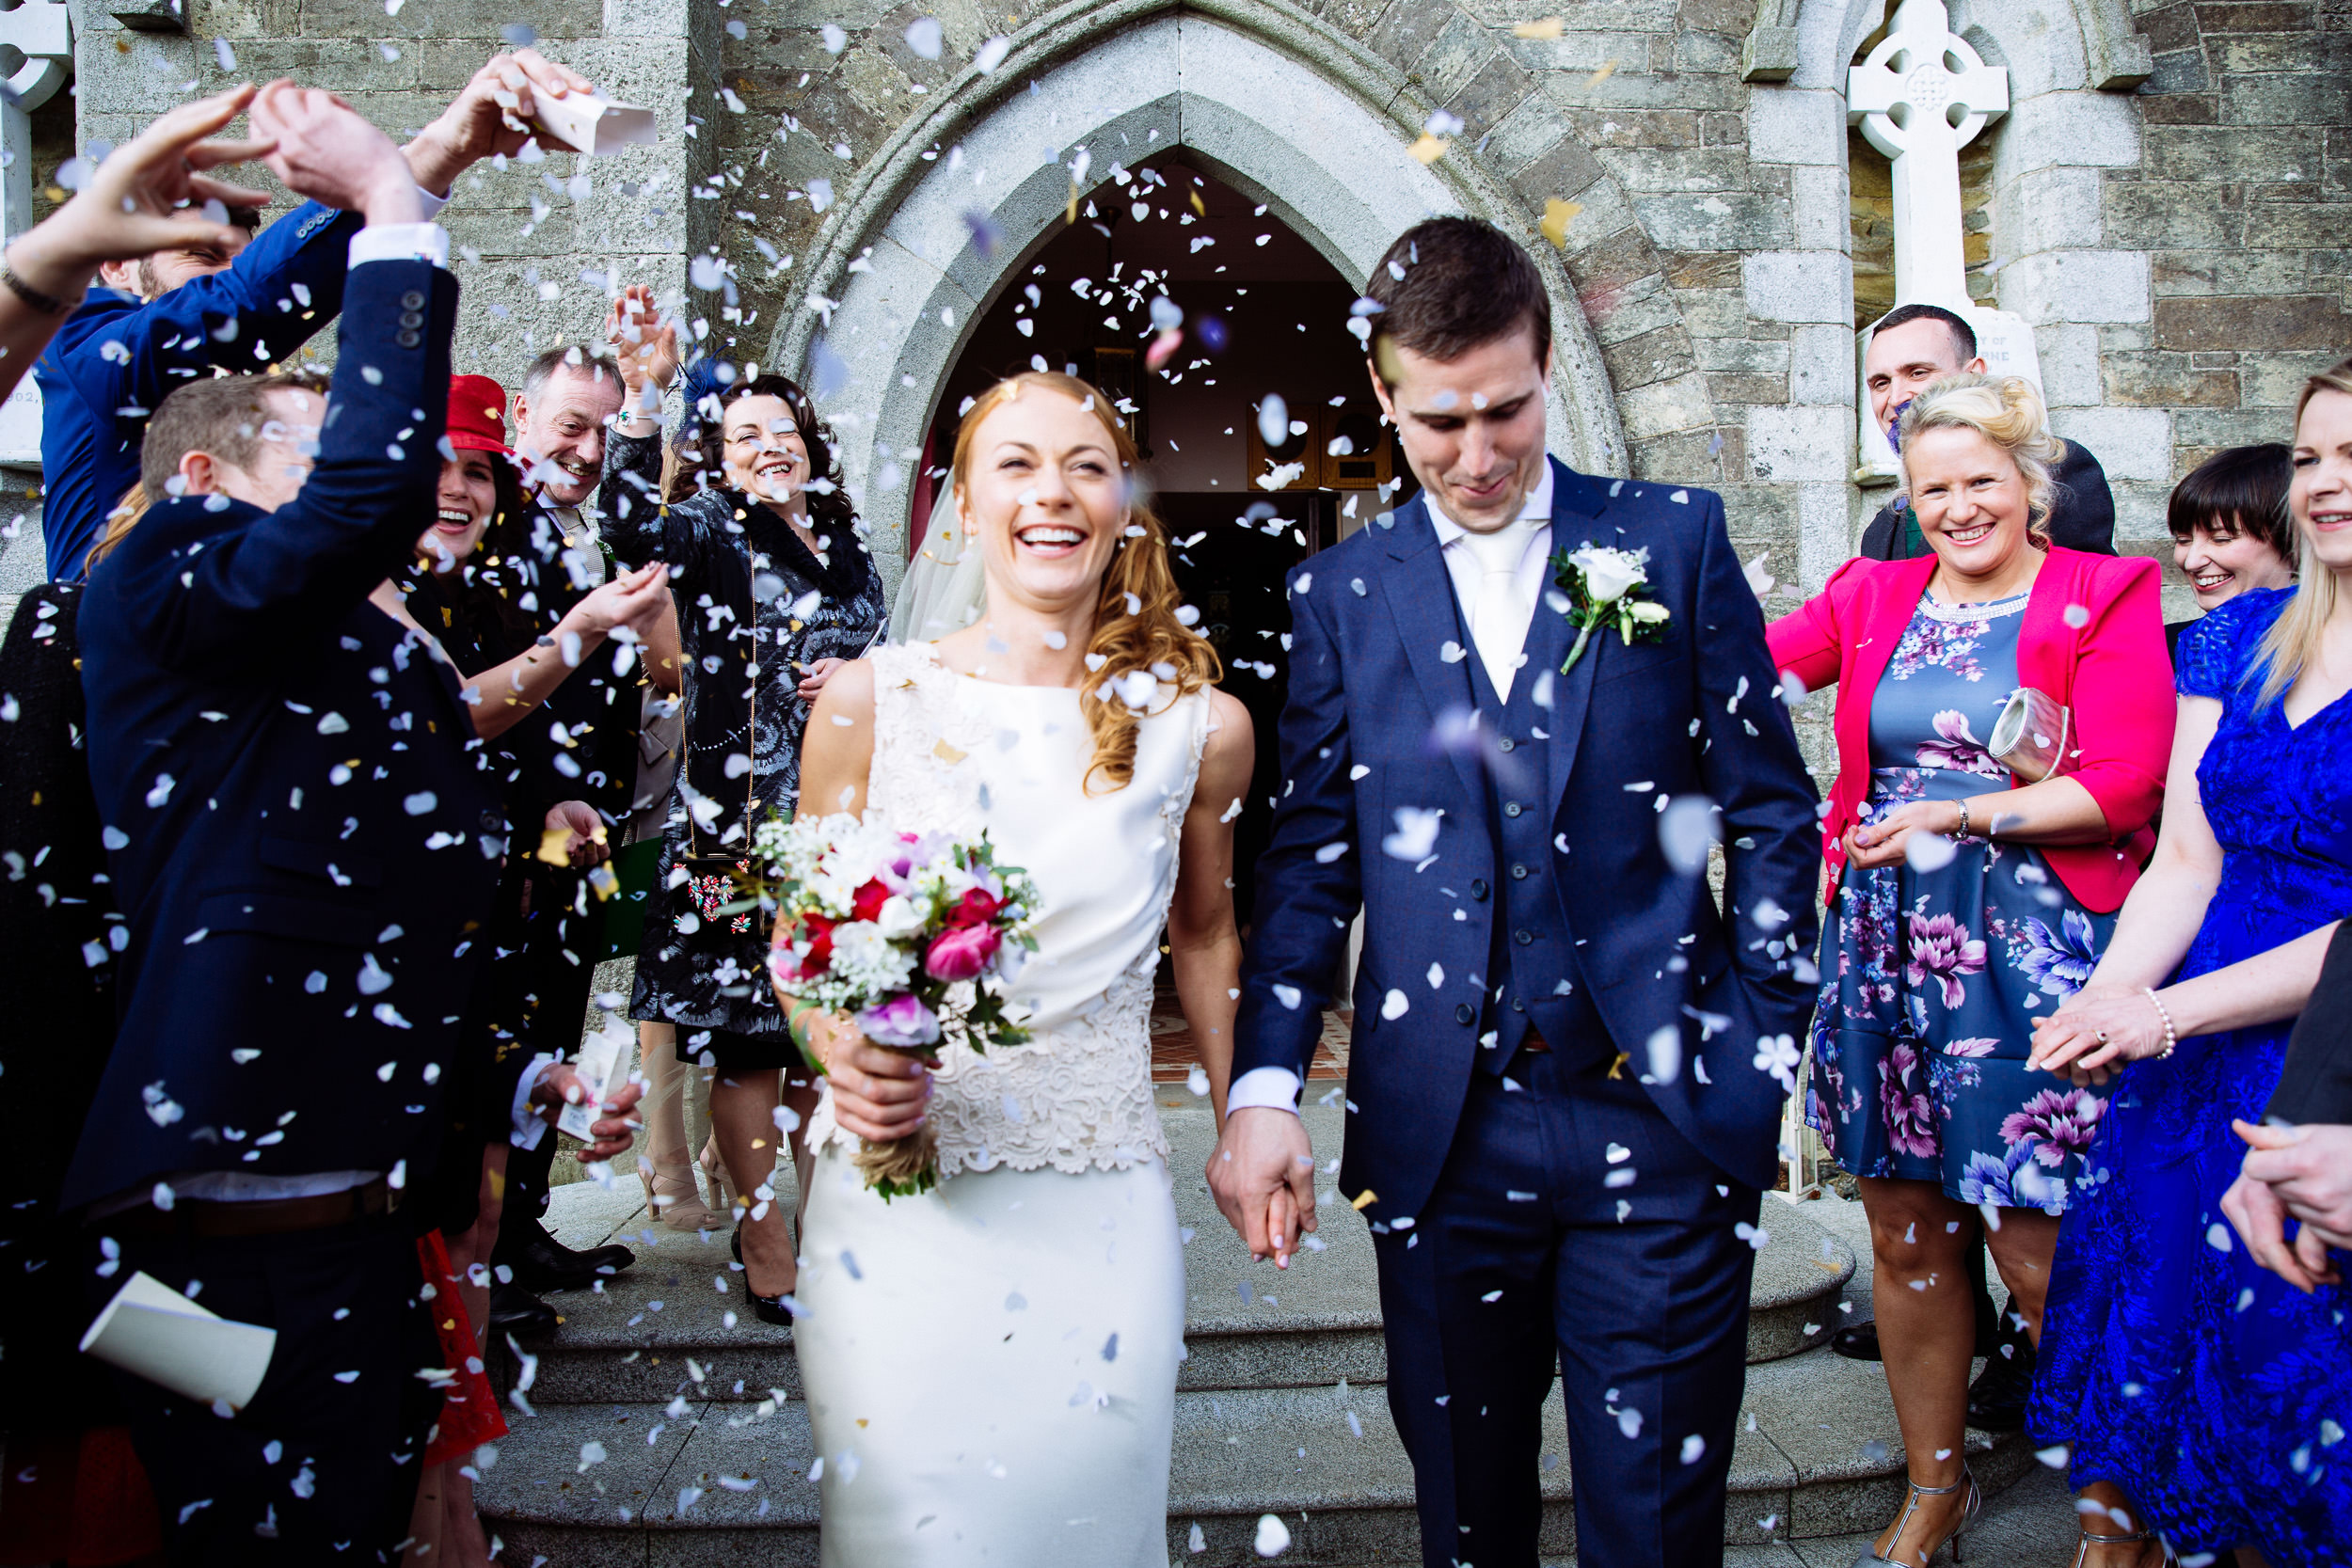 clairebyrnephotography-fun-wedding-photographer-ireland-creative-8.jpg